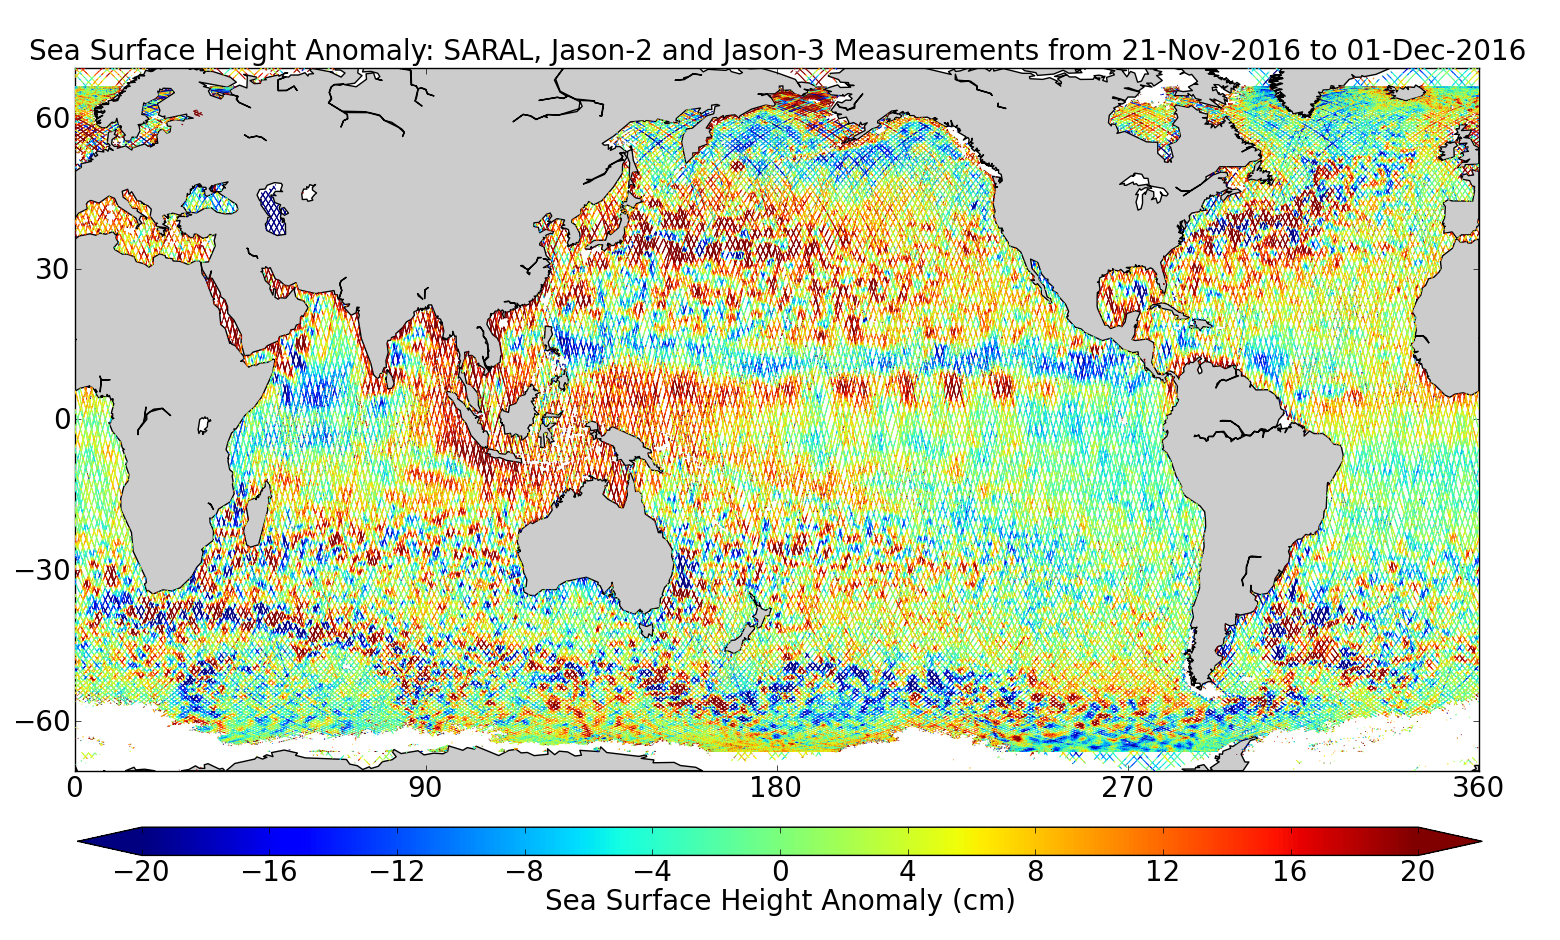 Sea Surface Height Anomaly: SARAL, Jason-2 and Jason-3 Measurements from 21-Nov-2016 to 01-Dec-2016